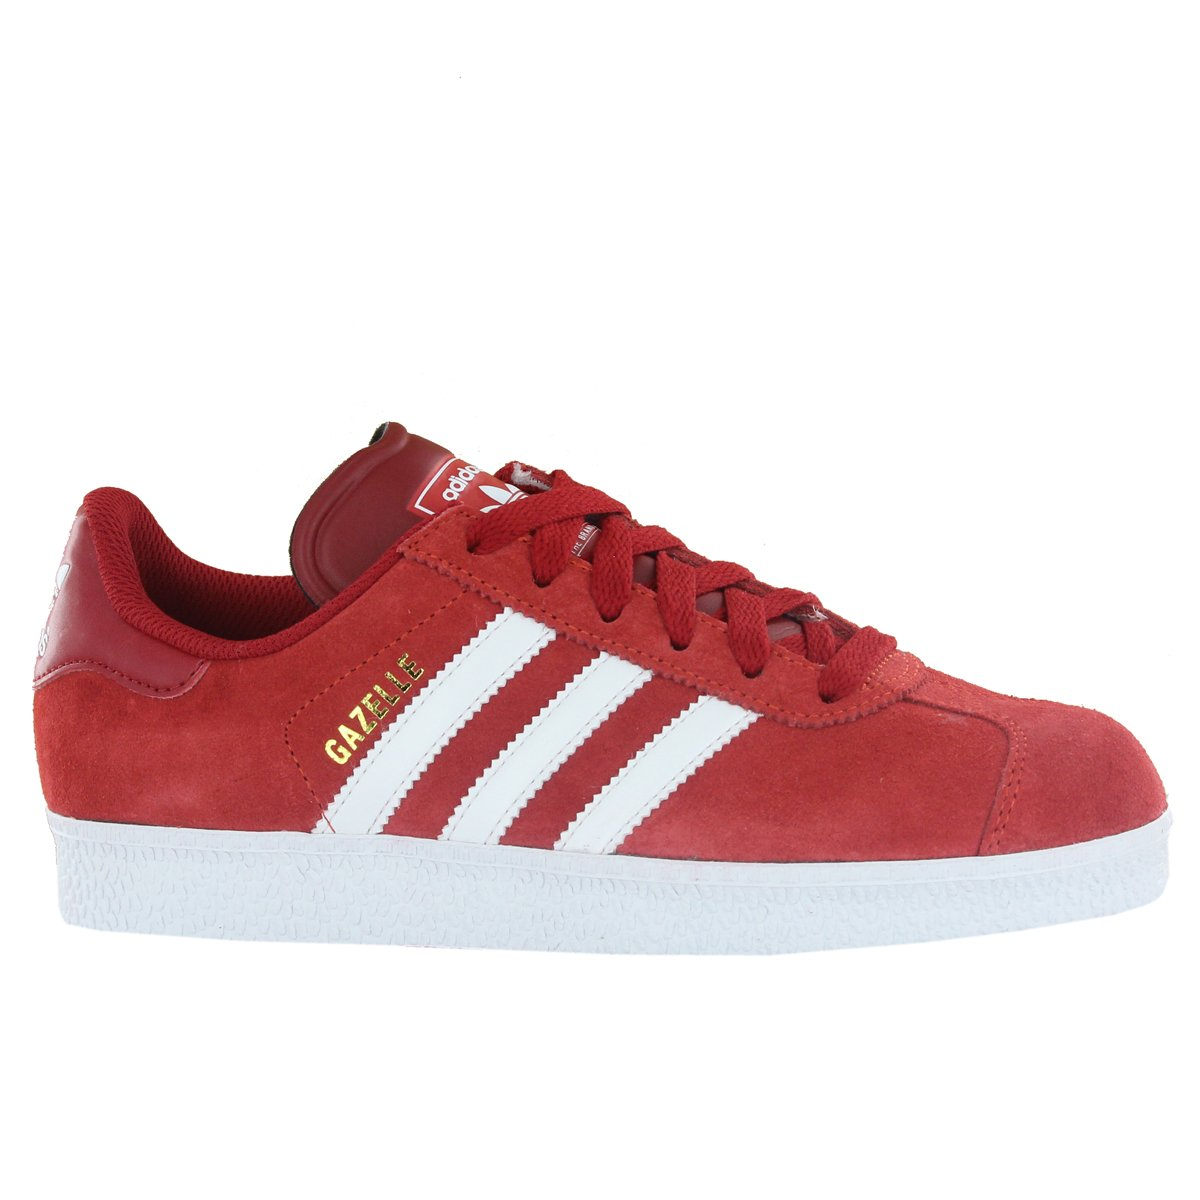 uk availability cb82d b1a3f Adidas Gazelle II Red Mens Trainers Size 8.5 UK  Amazon.co.uk  Shoes   Bags